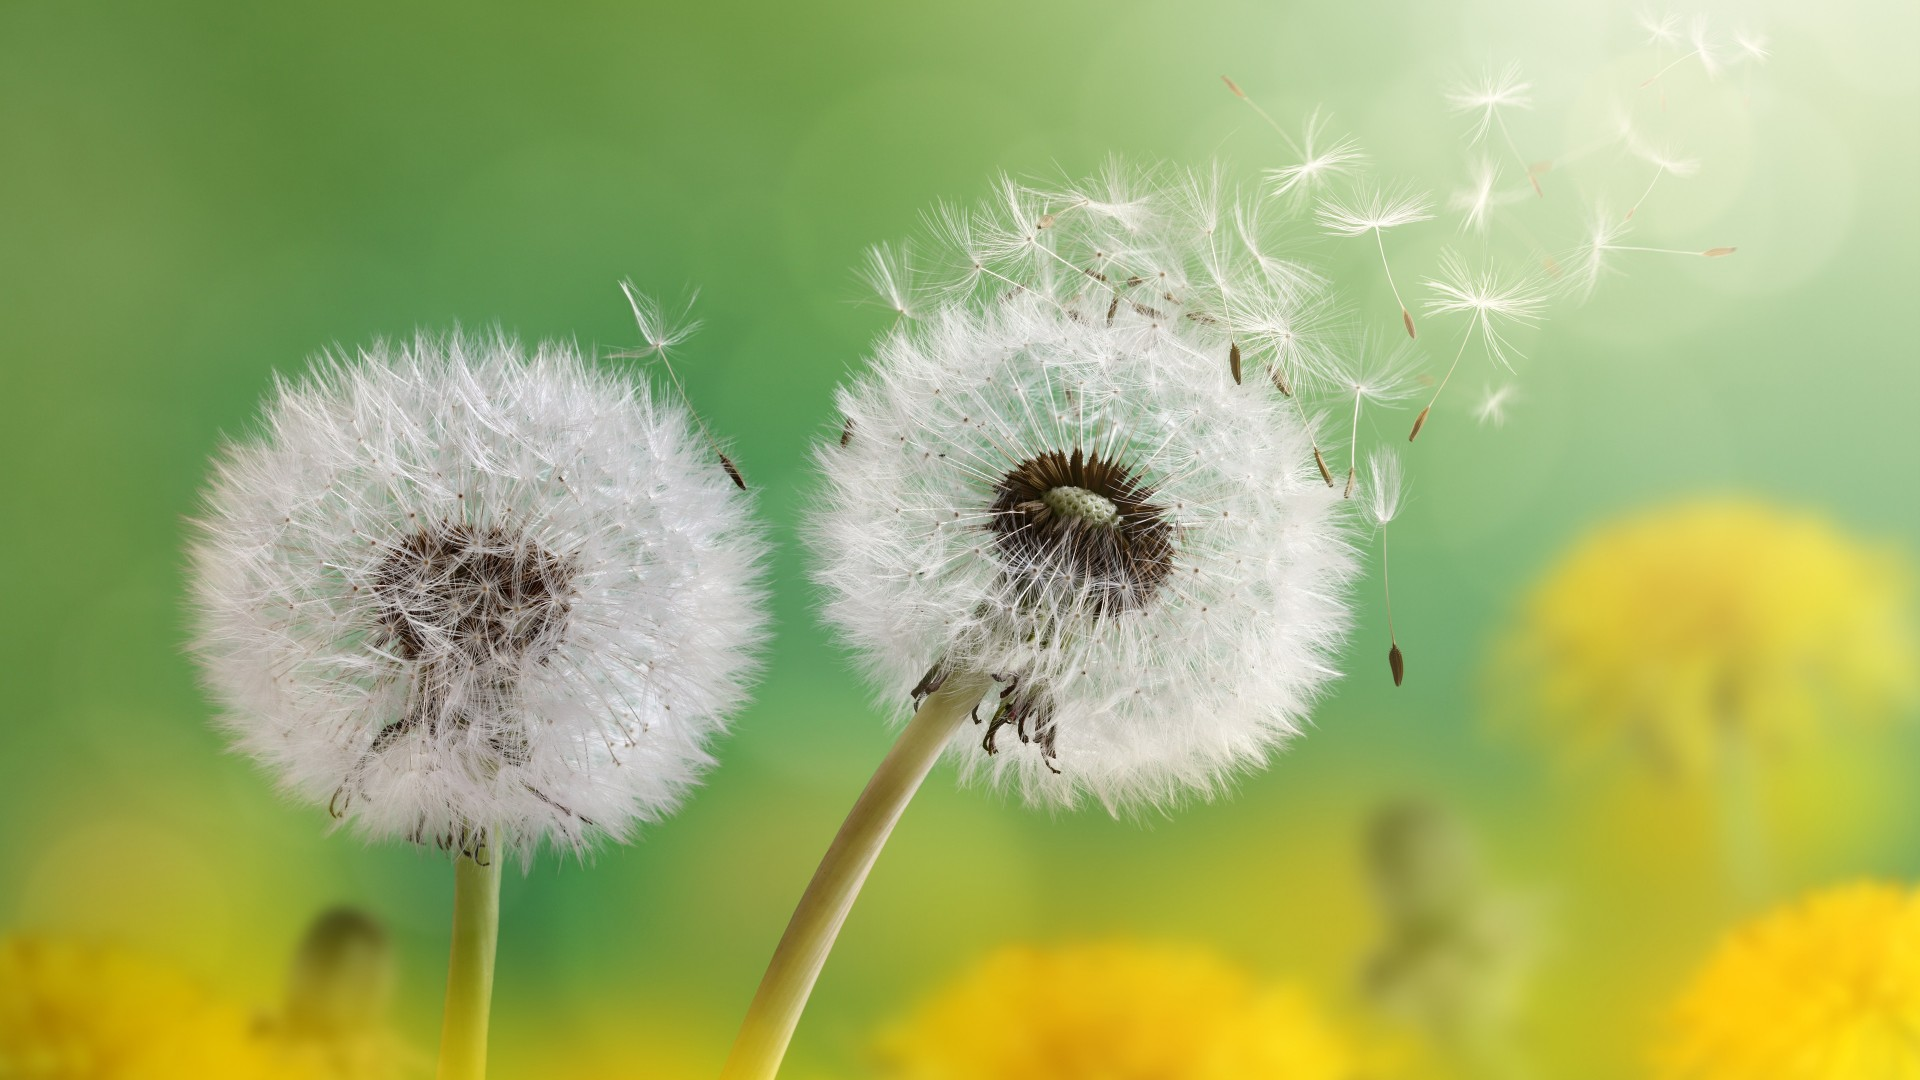 Wallpaper Dandelion 4k Hd Wallpaper Flower Nature Nature 11480